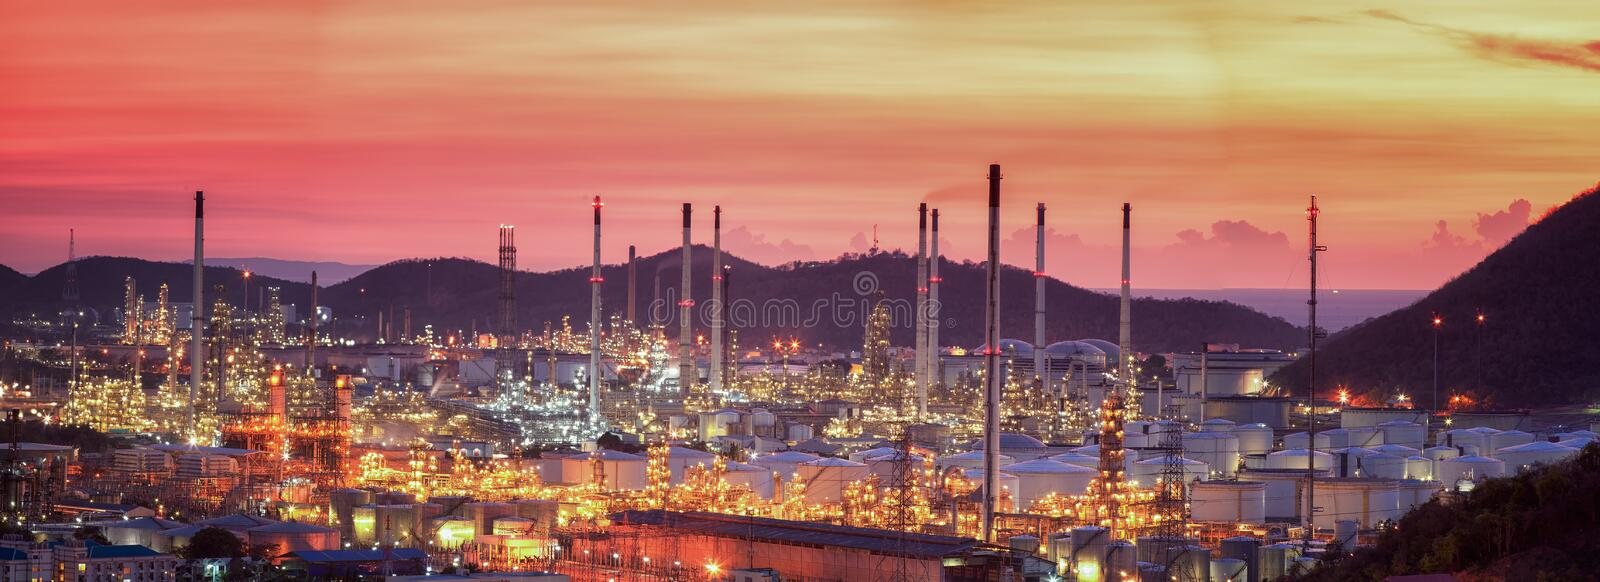 Oil refinery at twilight sky royalty free stock image